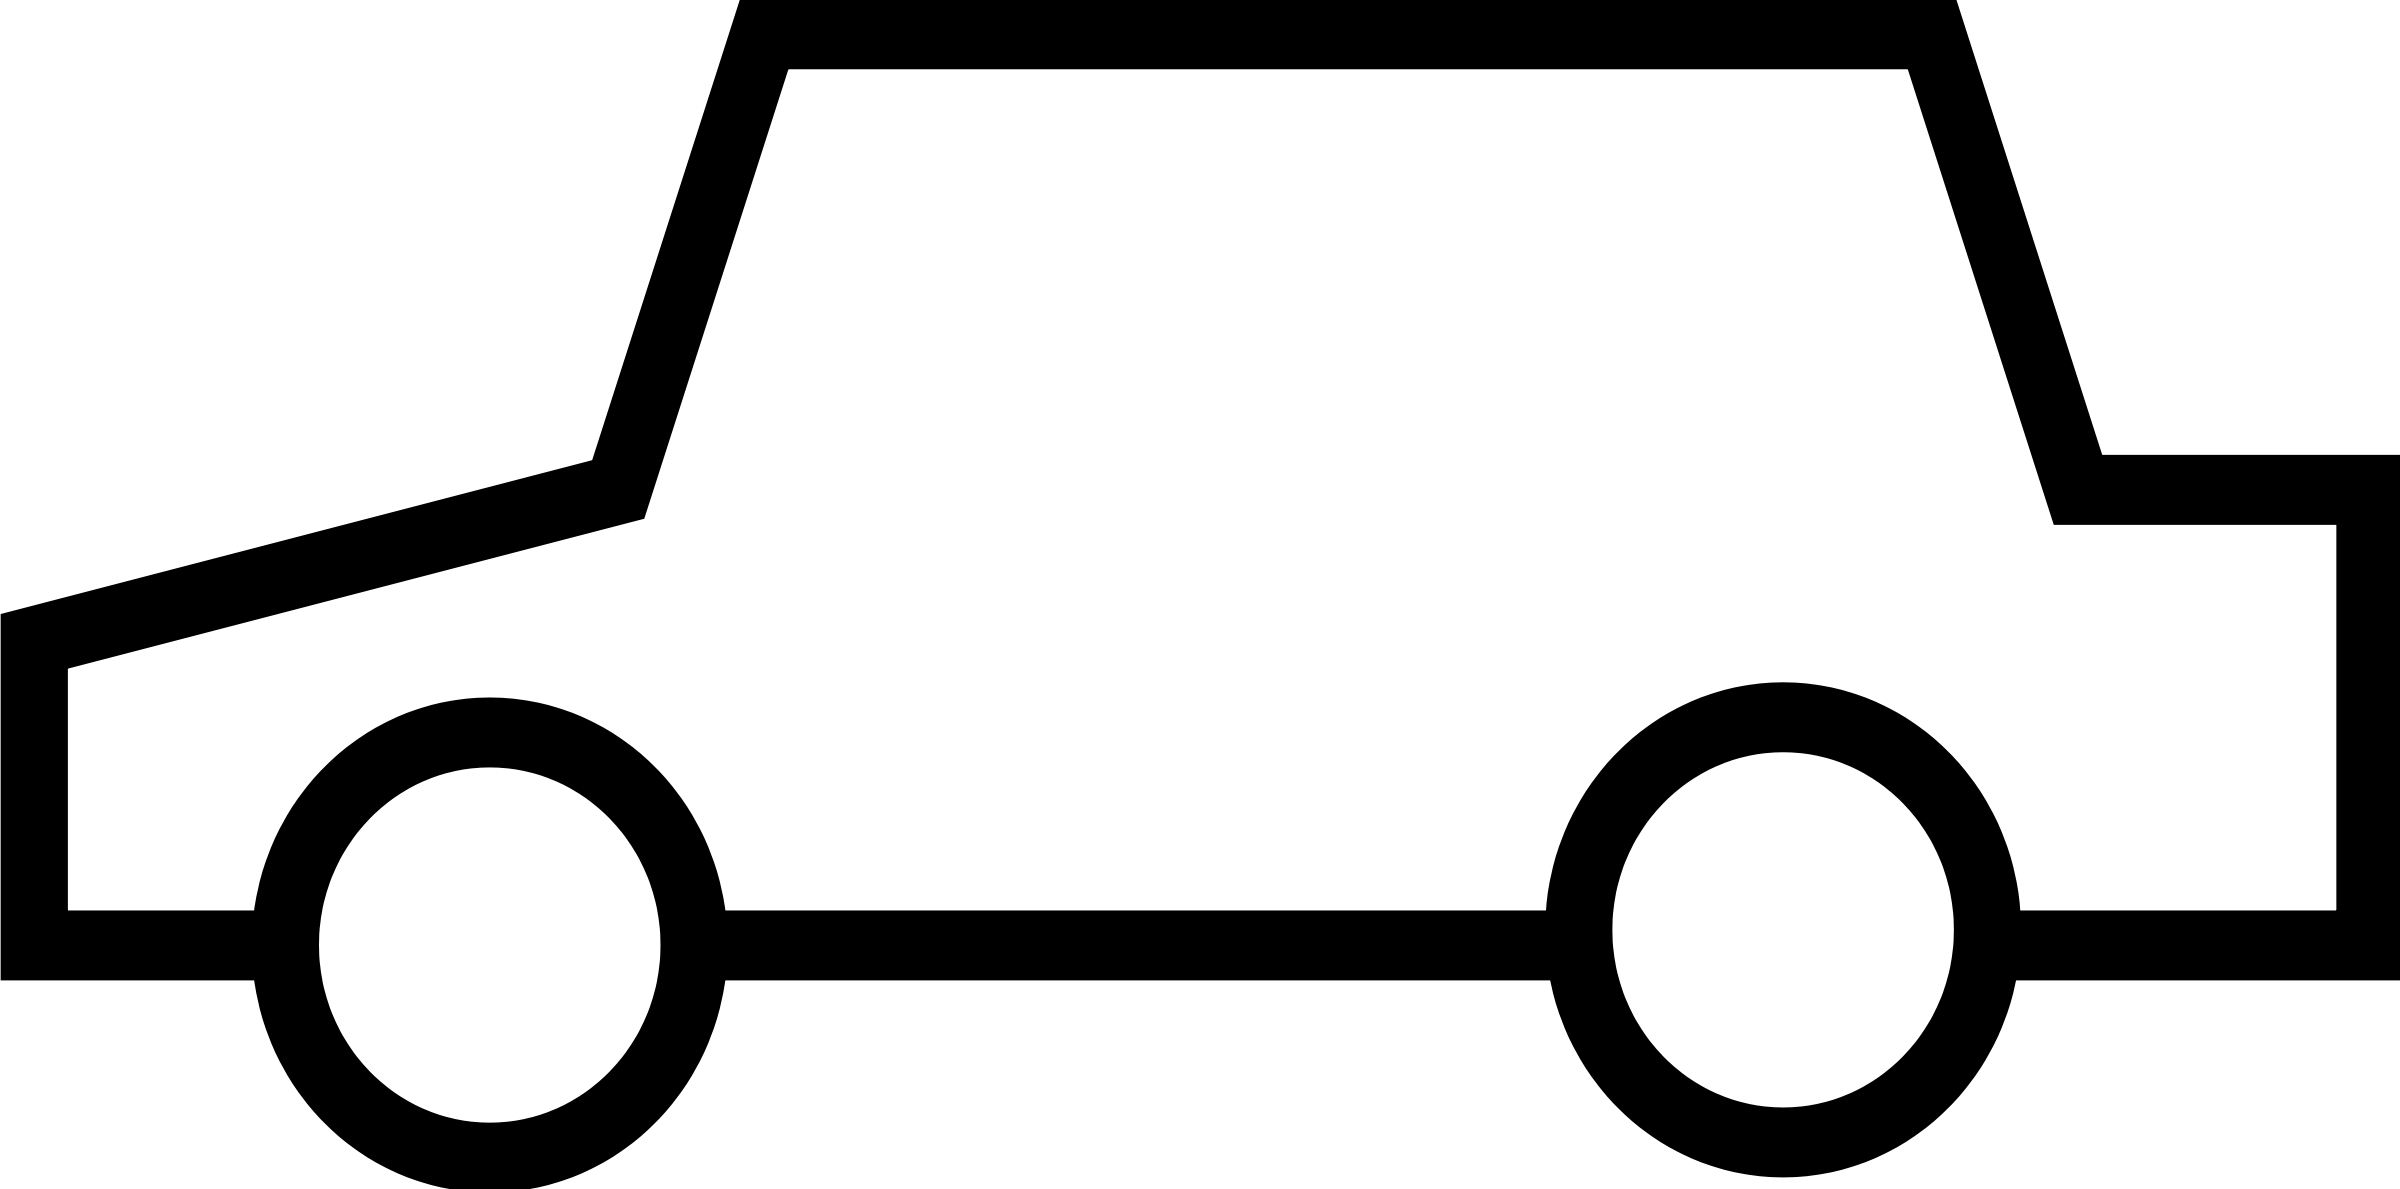 Diablotin A Ressort furthermore Toy Car Outline Clipart additionally Kenworth w900 together with Car Alone Cliparts besides . on toy car clip art